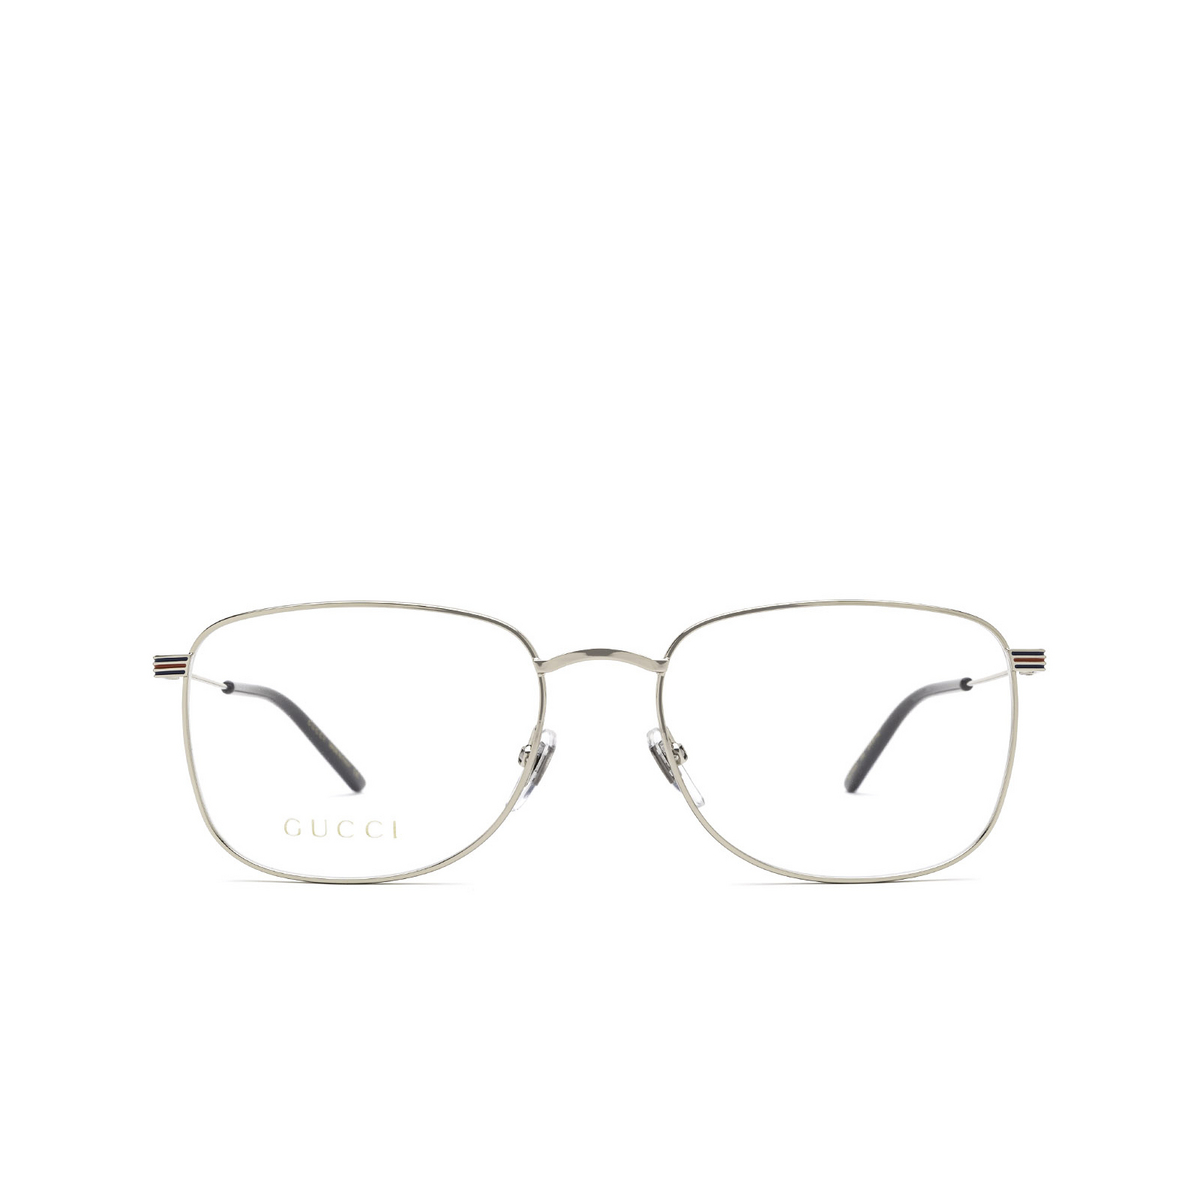 Gucci® Square Eyeglasses: GG1052O color Silver 006 - front view.